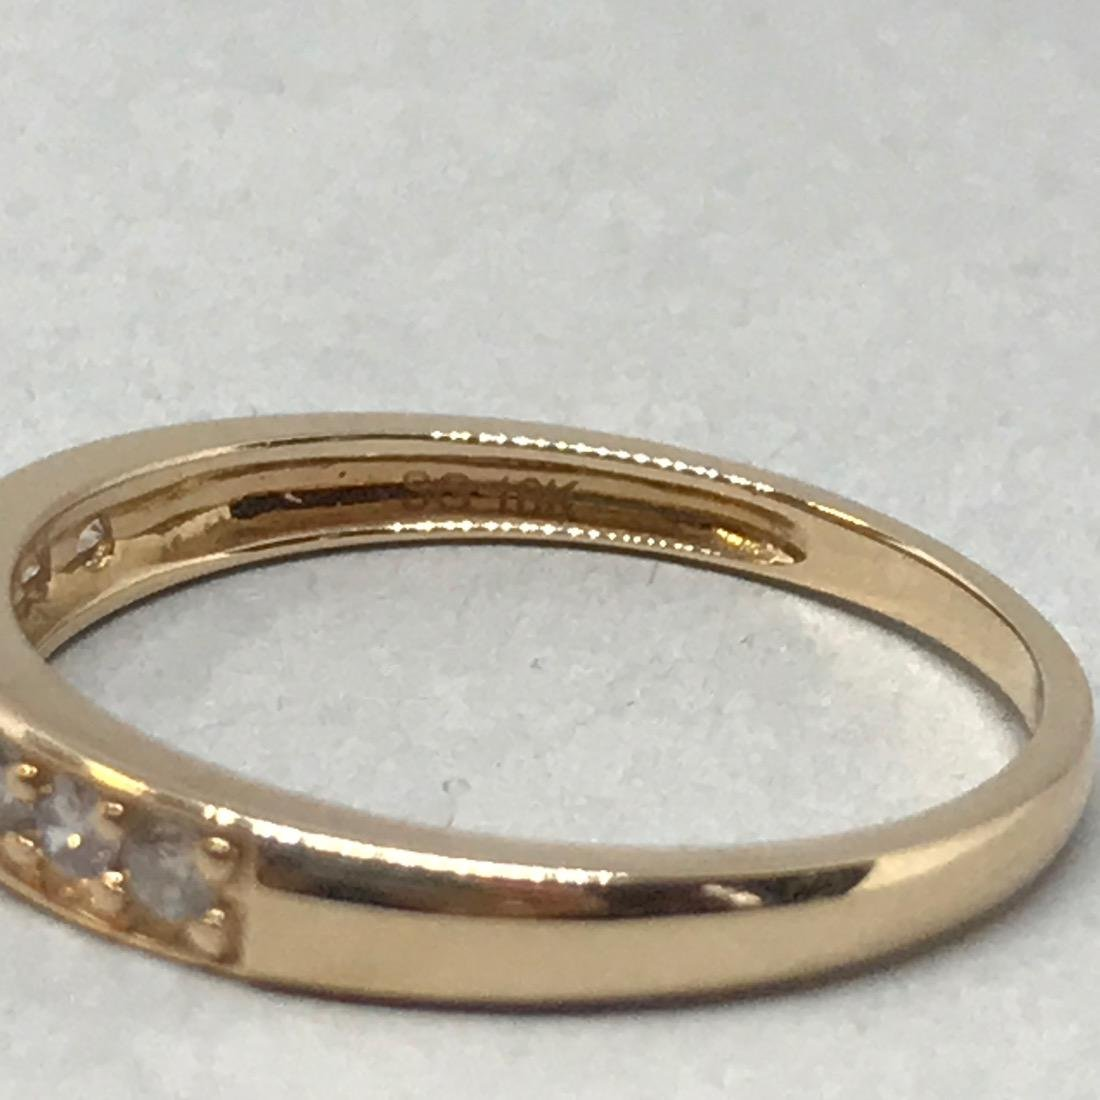 10K Gold Band with Diamonds - 3